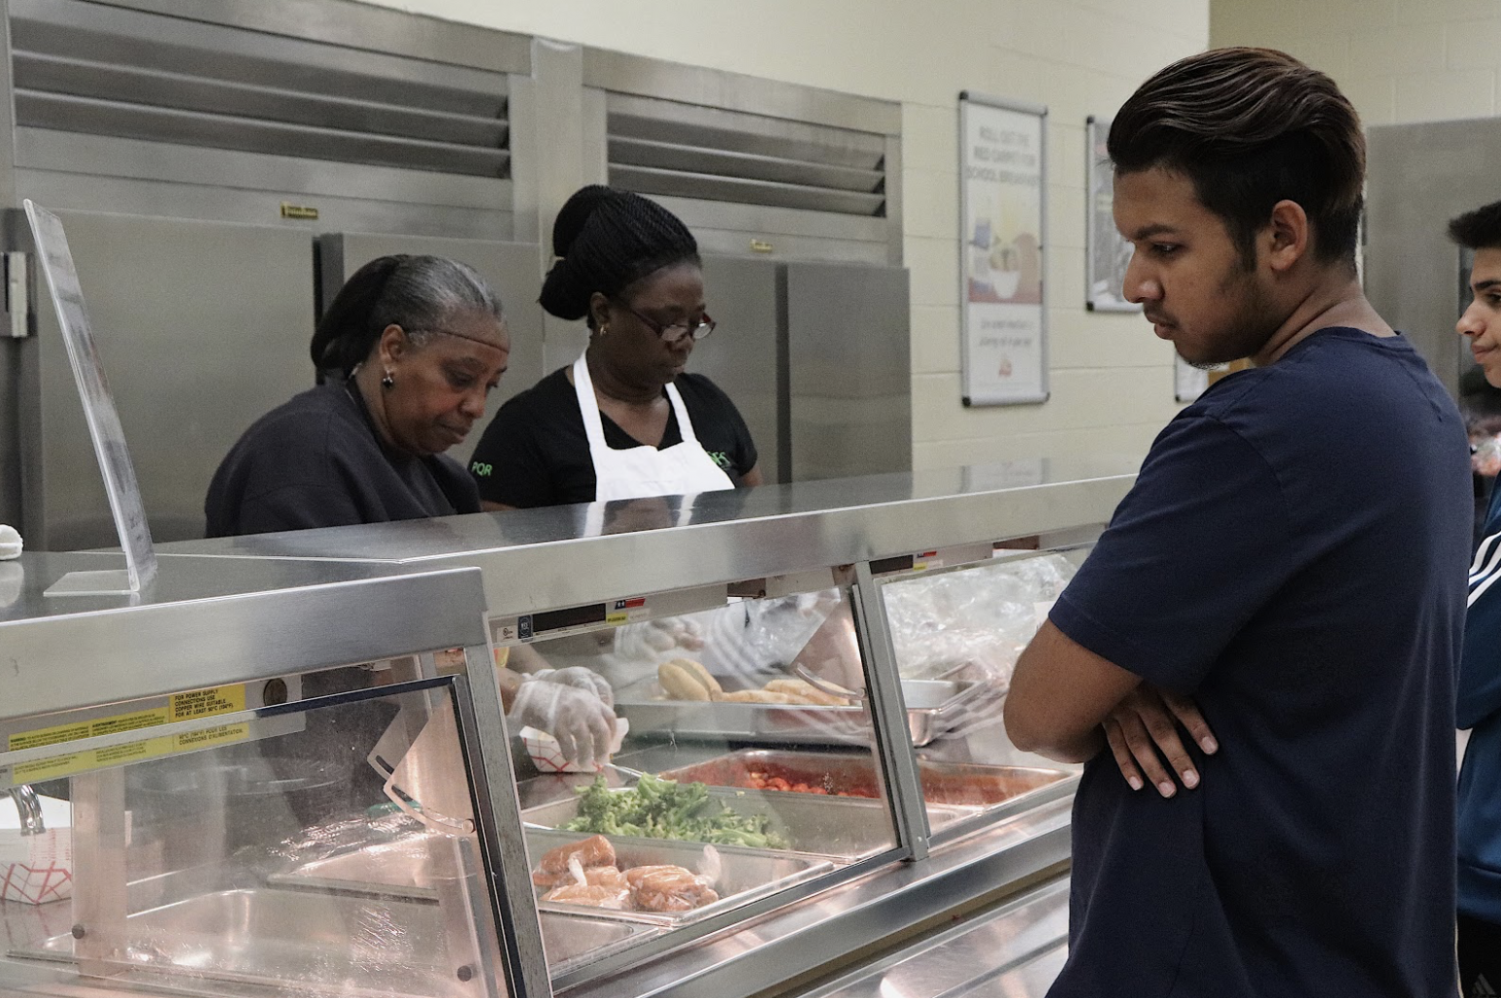 Visual Art senior Brandon Kainth contemplates which food to choose while waiting in the lunch line. The cafeteria staff served students throughout all of lunch and in the morning for breakfast, beginning at 7:30 a.m.